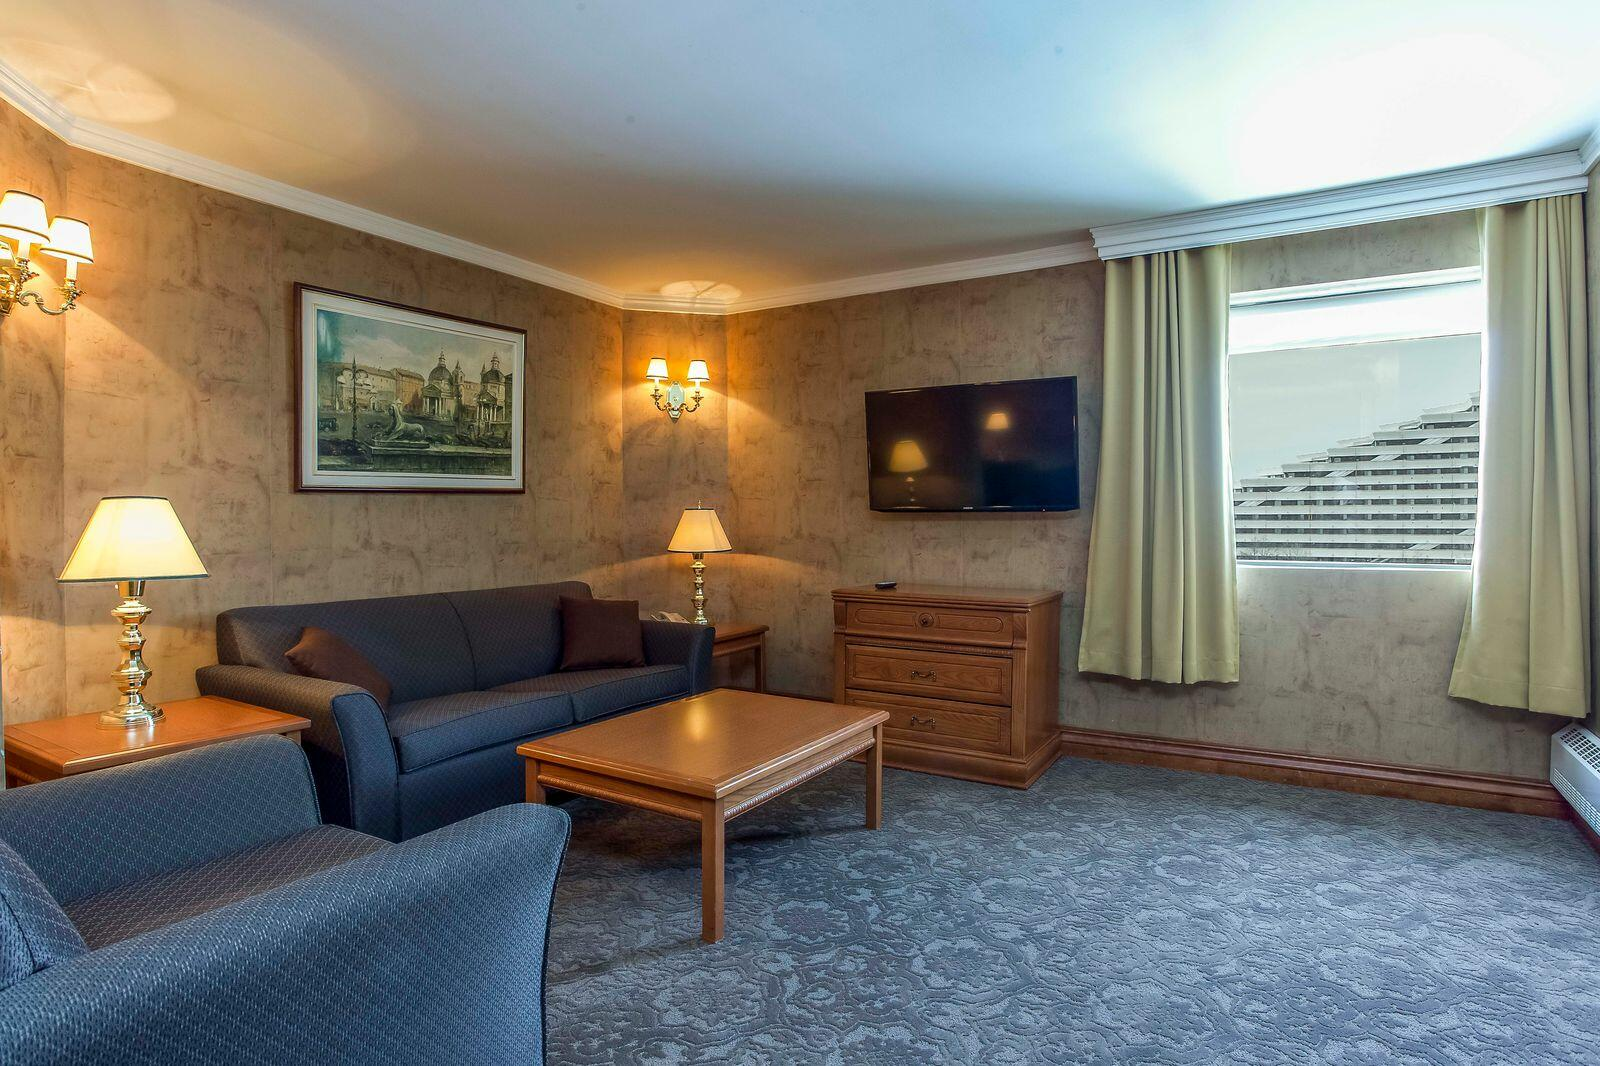 Executive Suite living room.